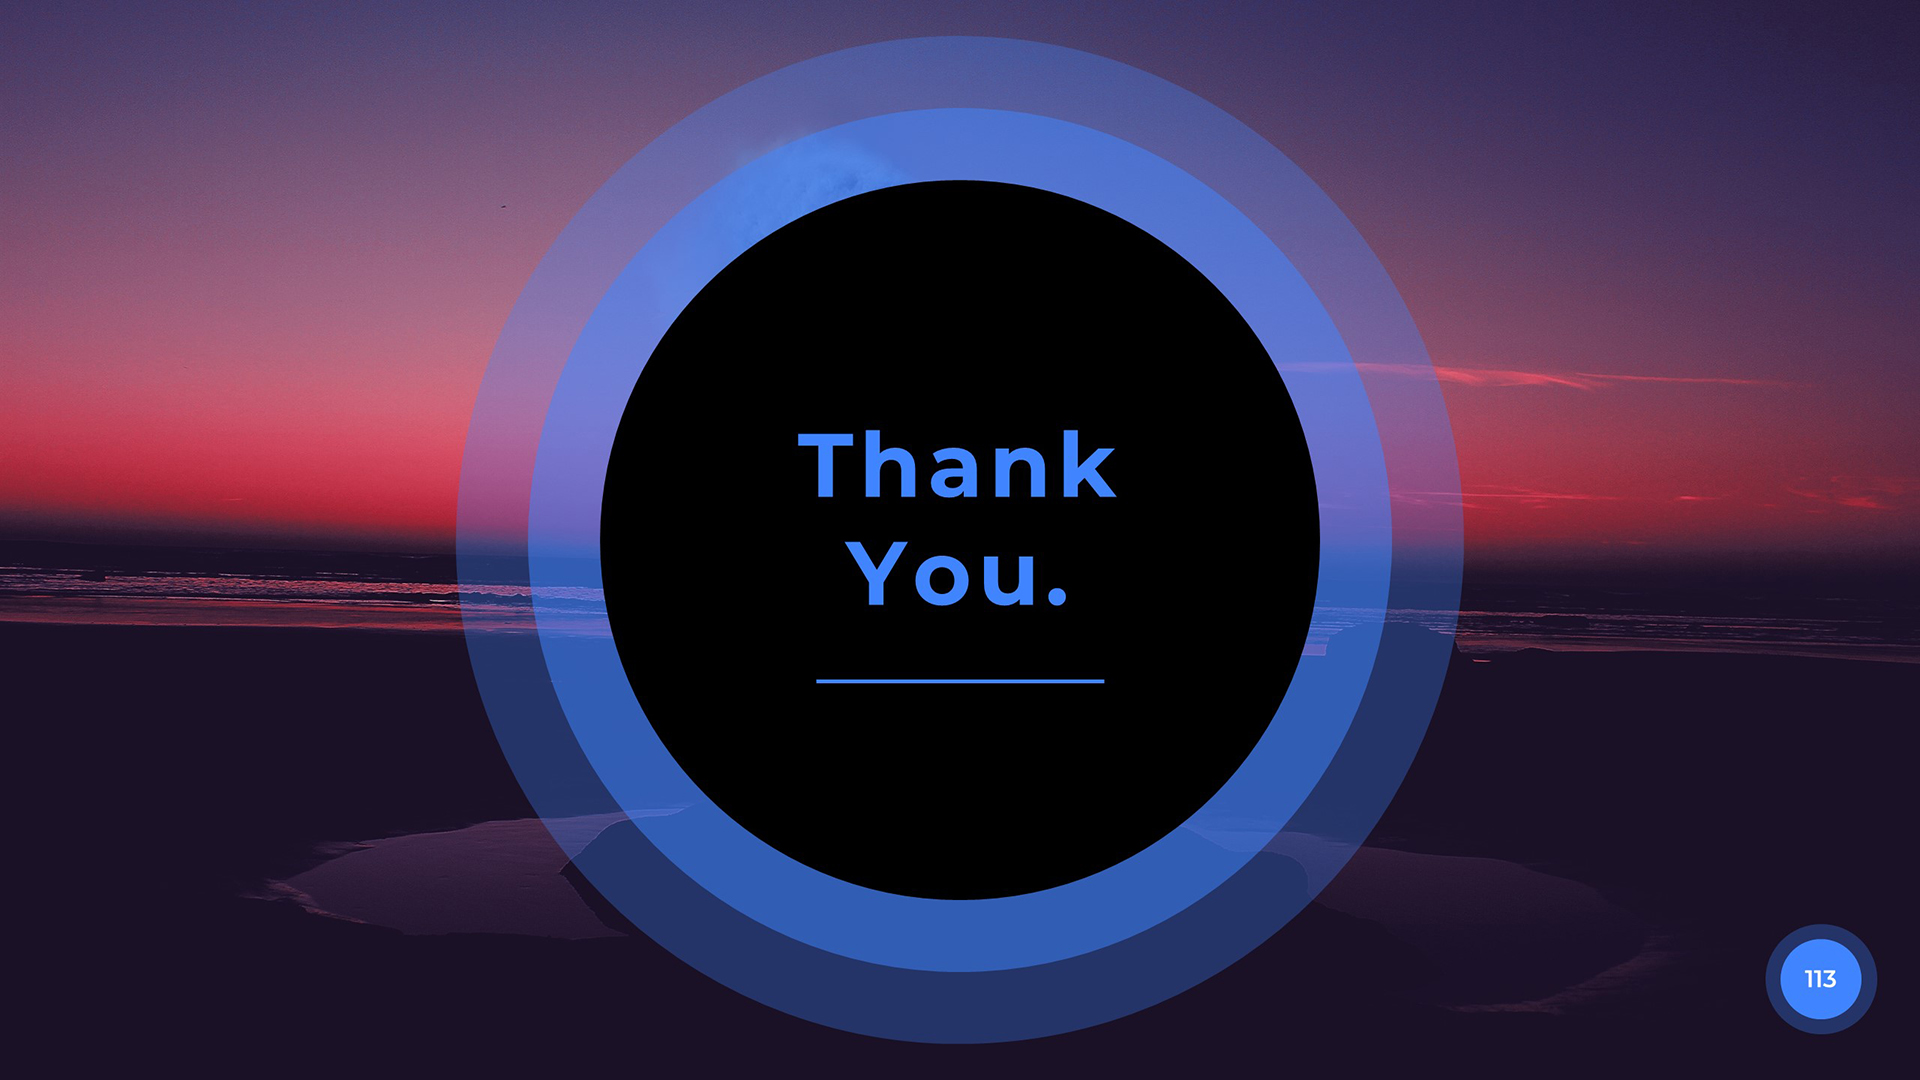 Thank you background for powerpoint presentation vatoz thank you background for powerpoint presentation background ppt template 015 thank you background for powerpoint presentation toneelgroepblik Choice Image